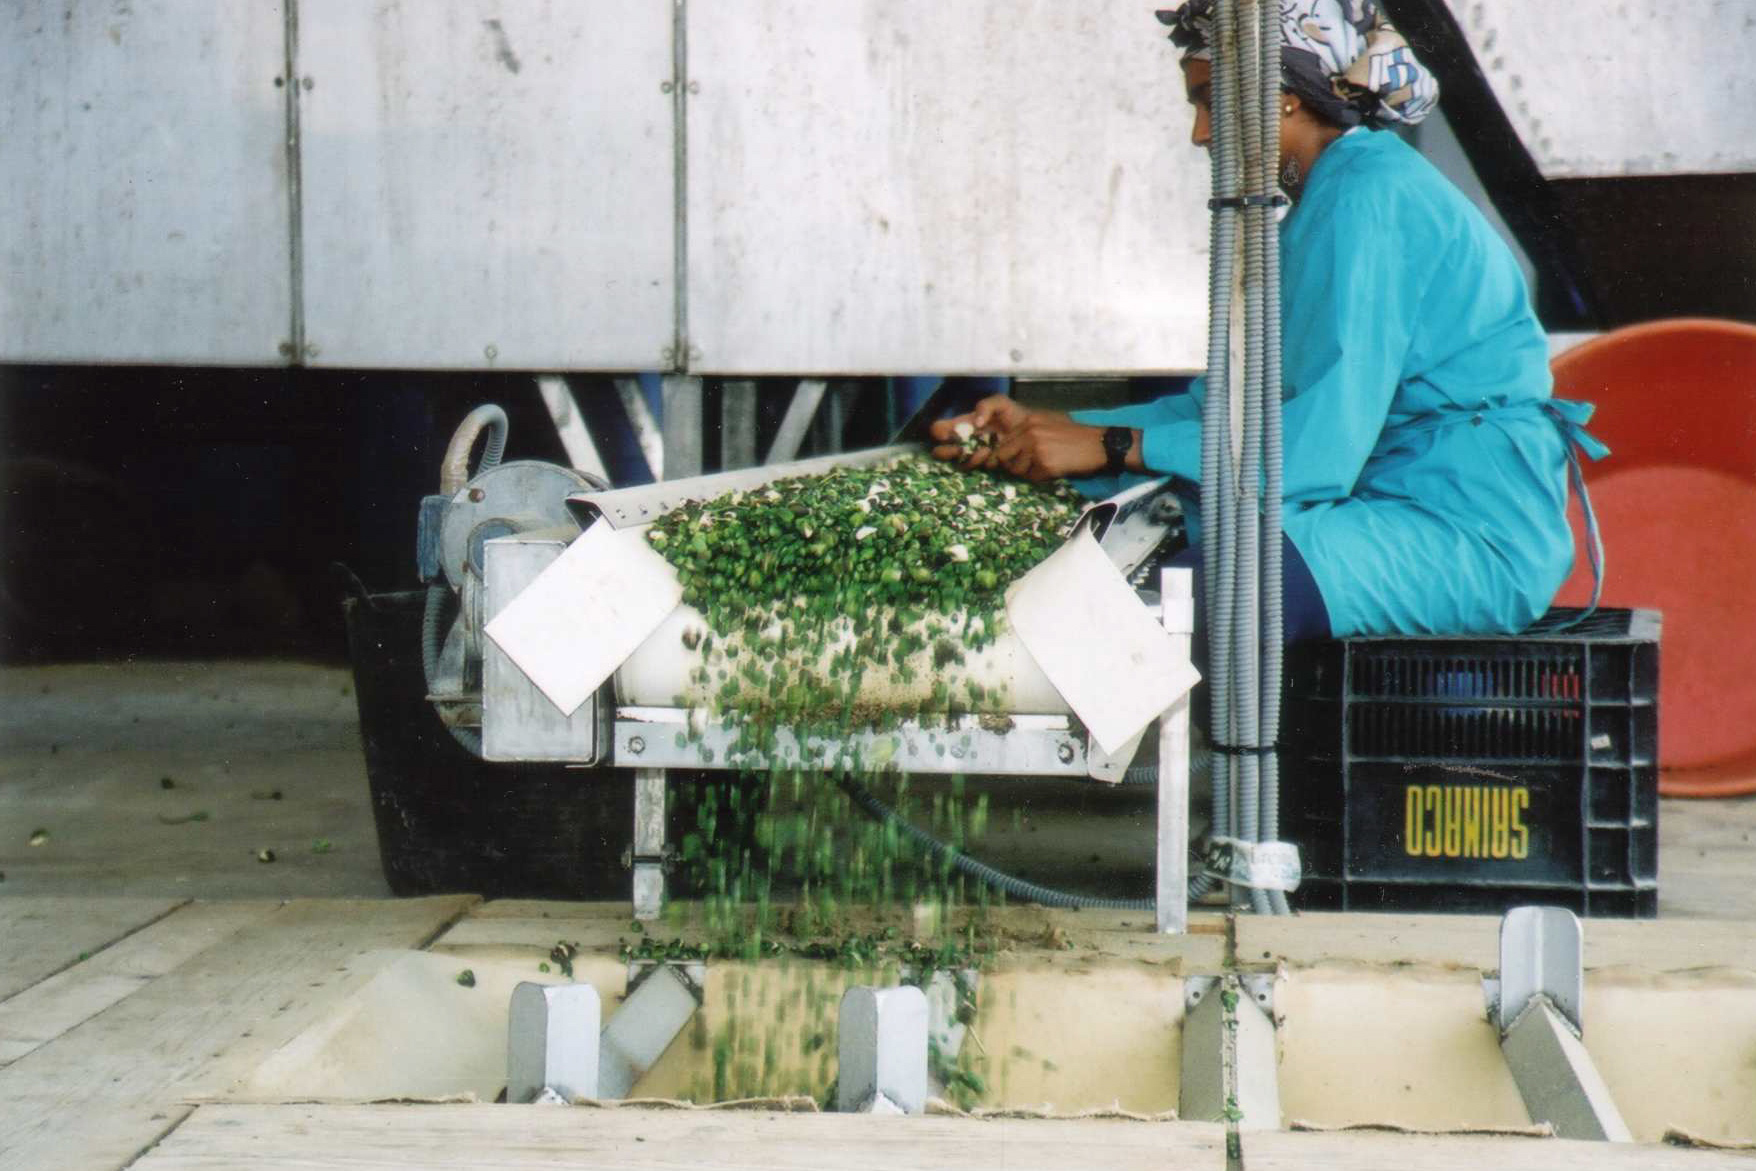 Cleaning and sorting the harvest in the Caper factory in Fez Morocco